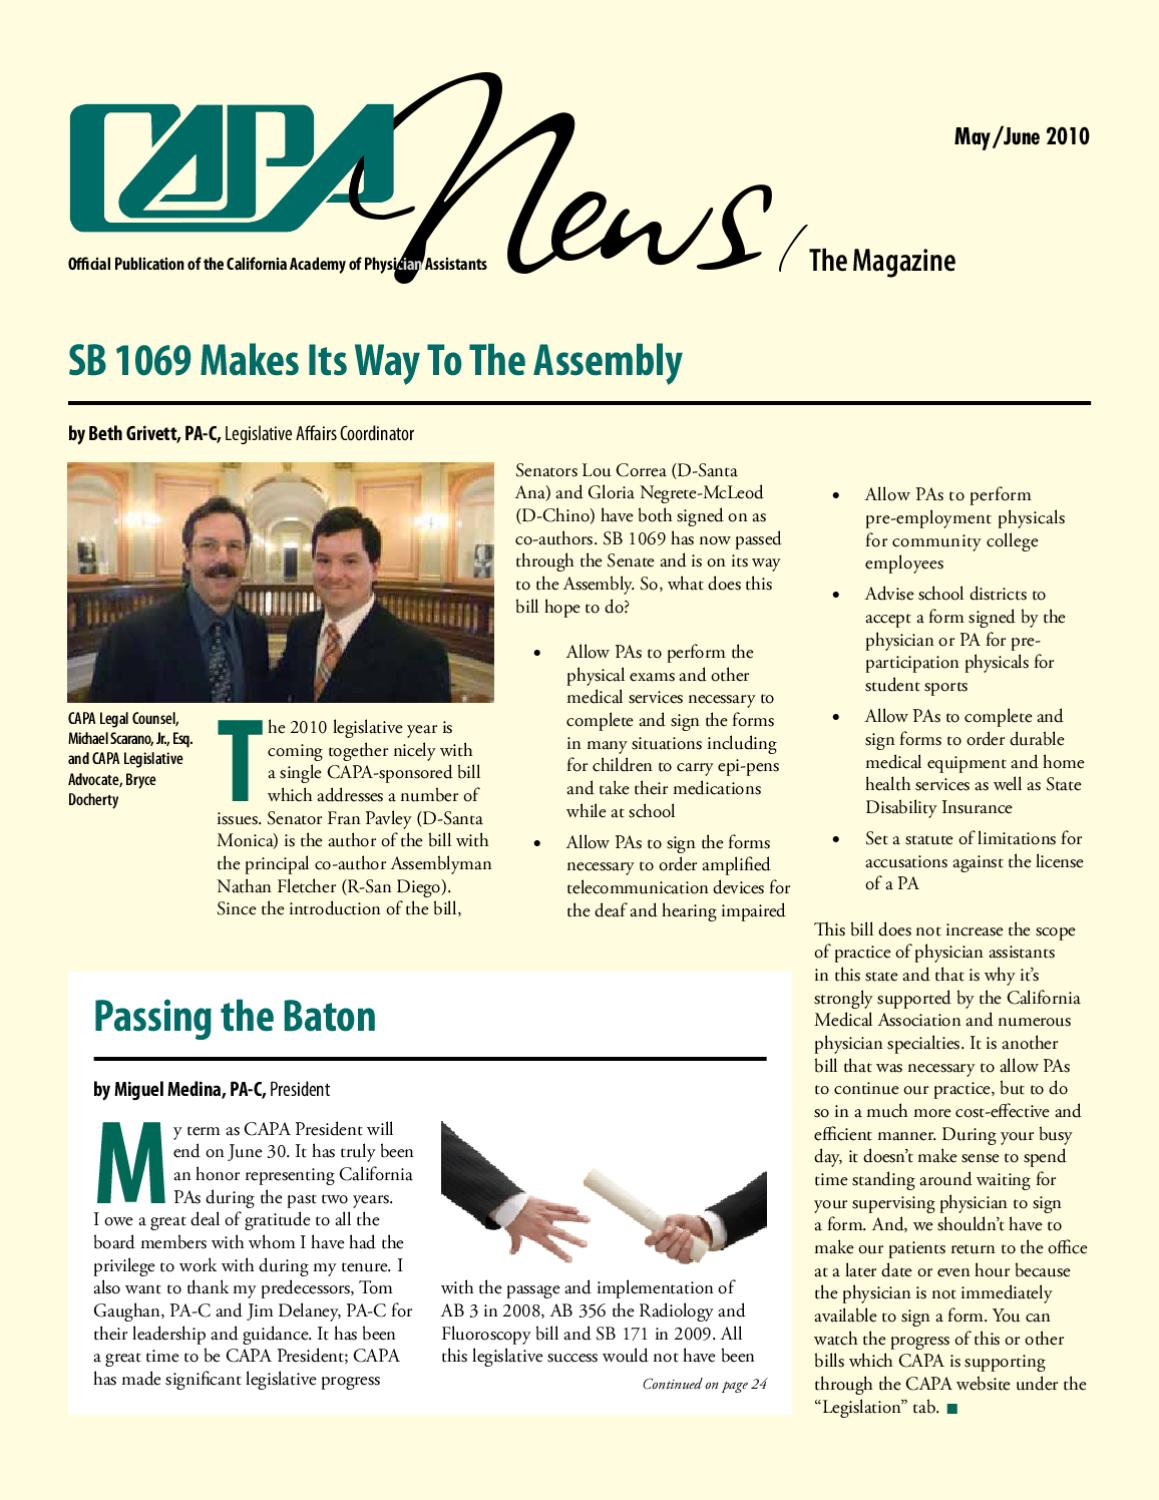 2010 News May/June by CA Academy of PAs - issuu